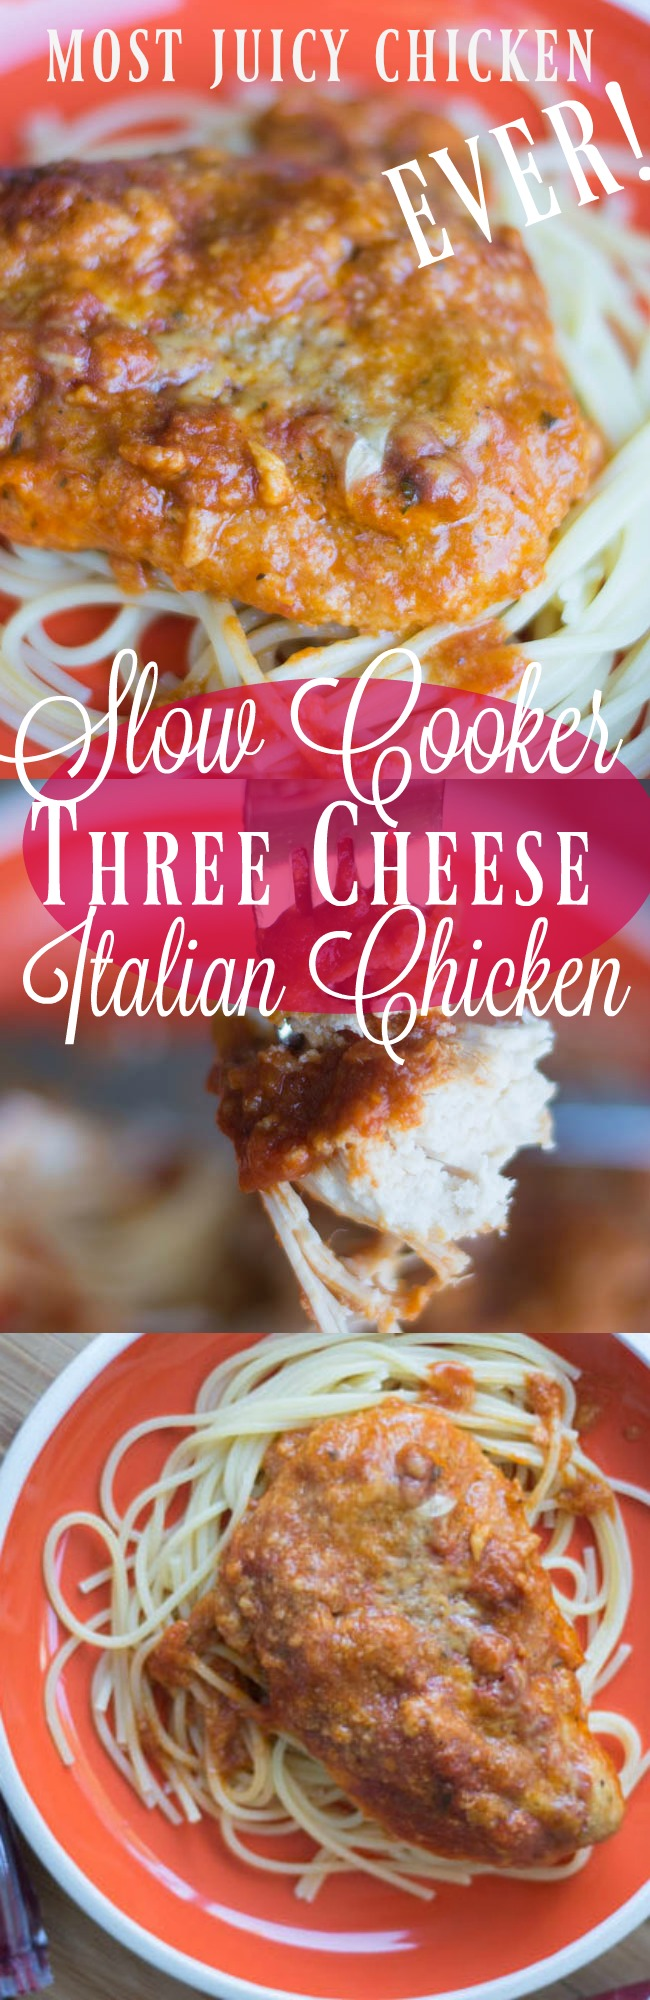 This slow cooker three cheese Italian chicken is one of the juiciest chicken recipes you will ever find. It's a huge hit! via @clarkscondensed